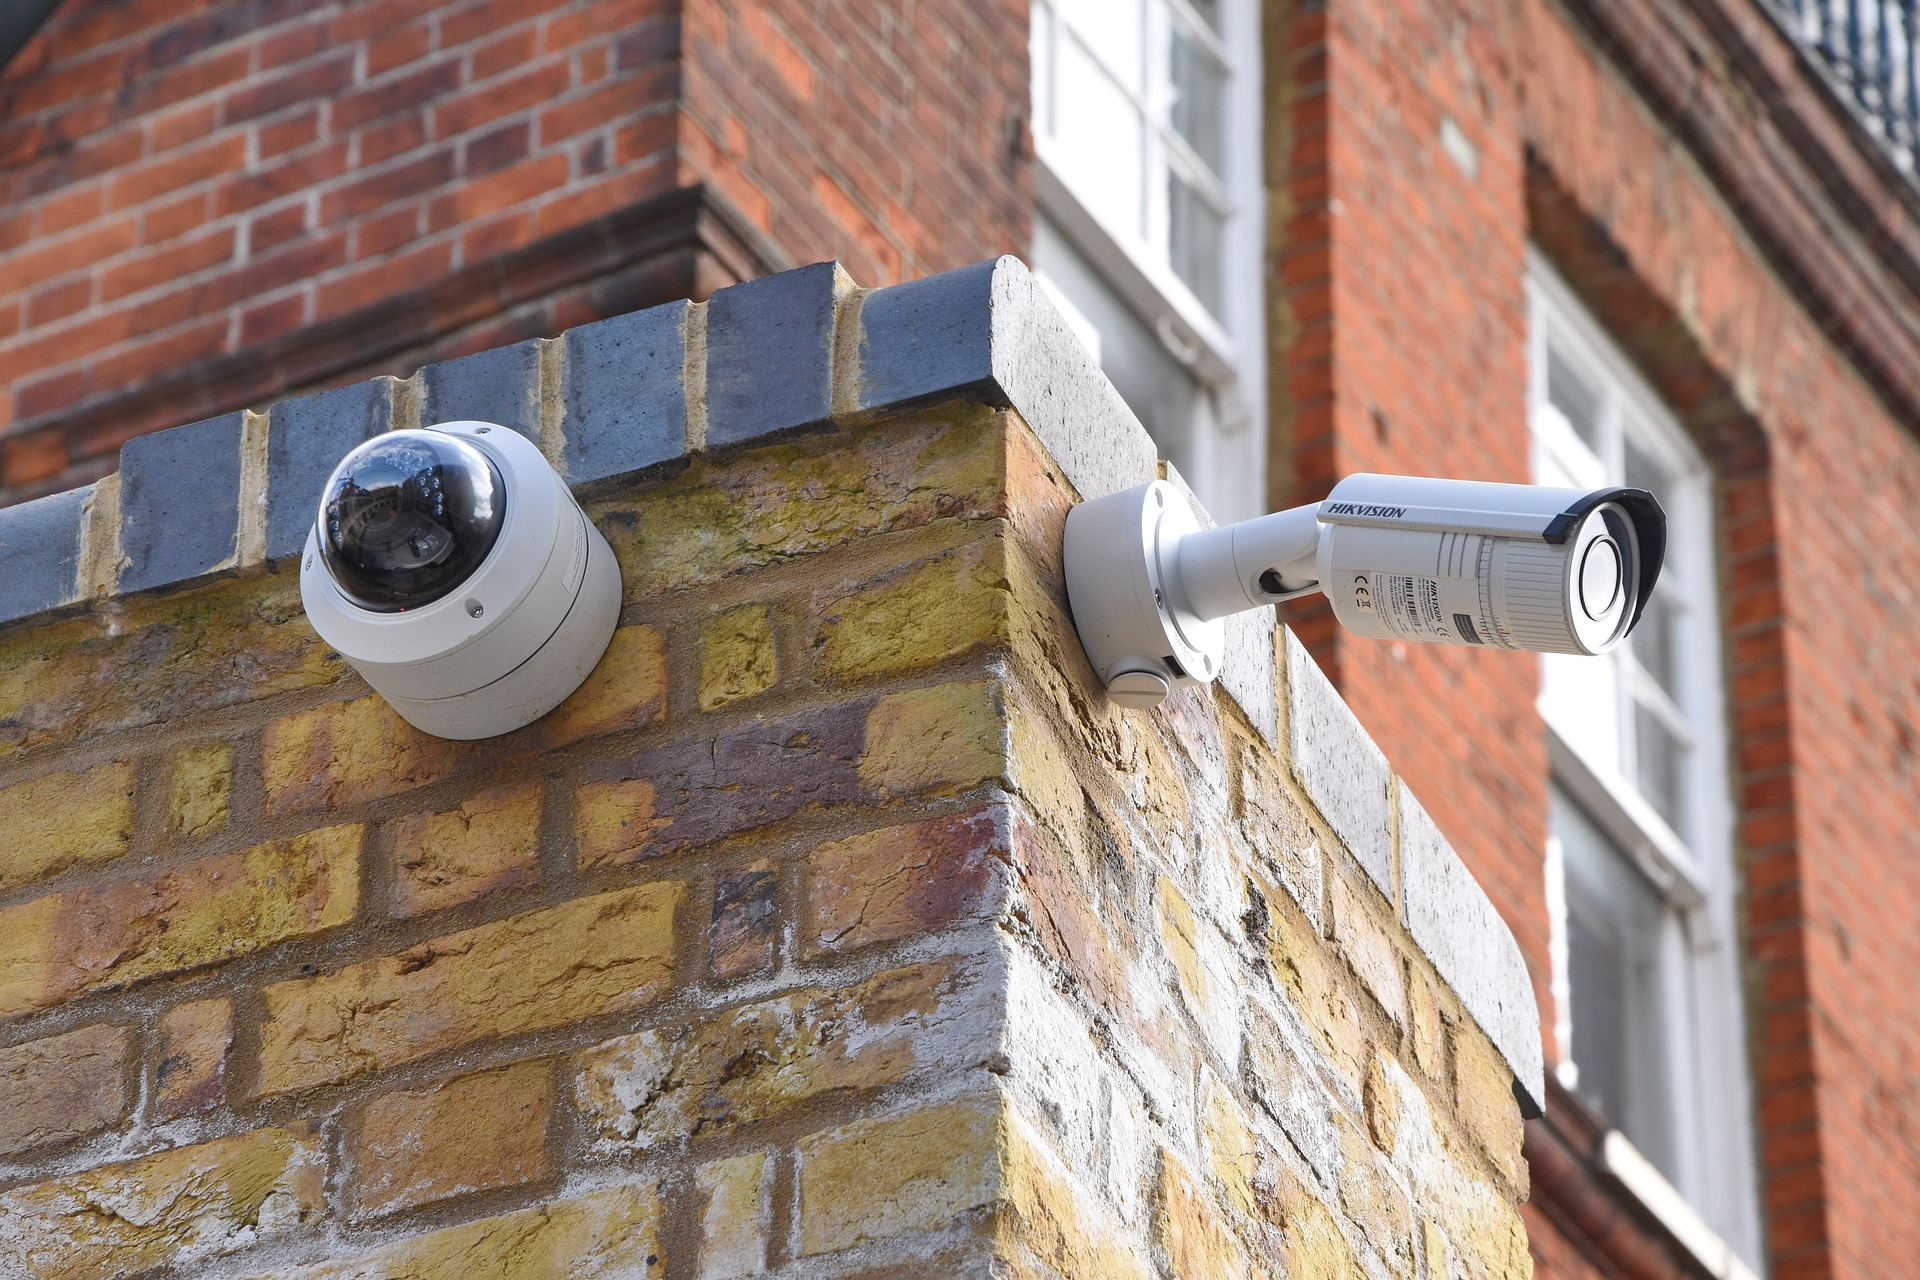 two security cameras mounted on brick corner